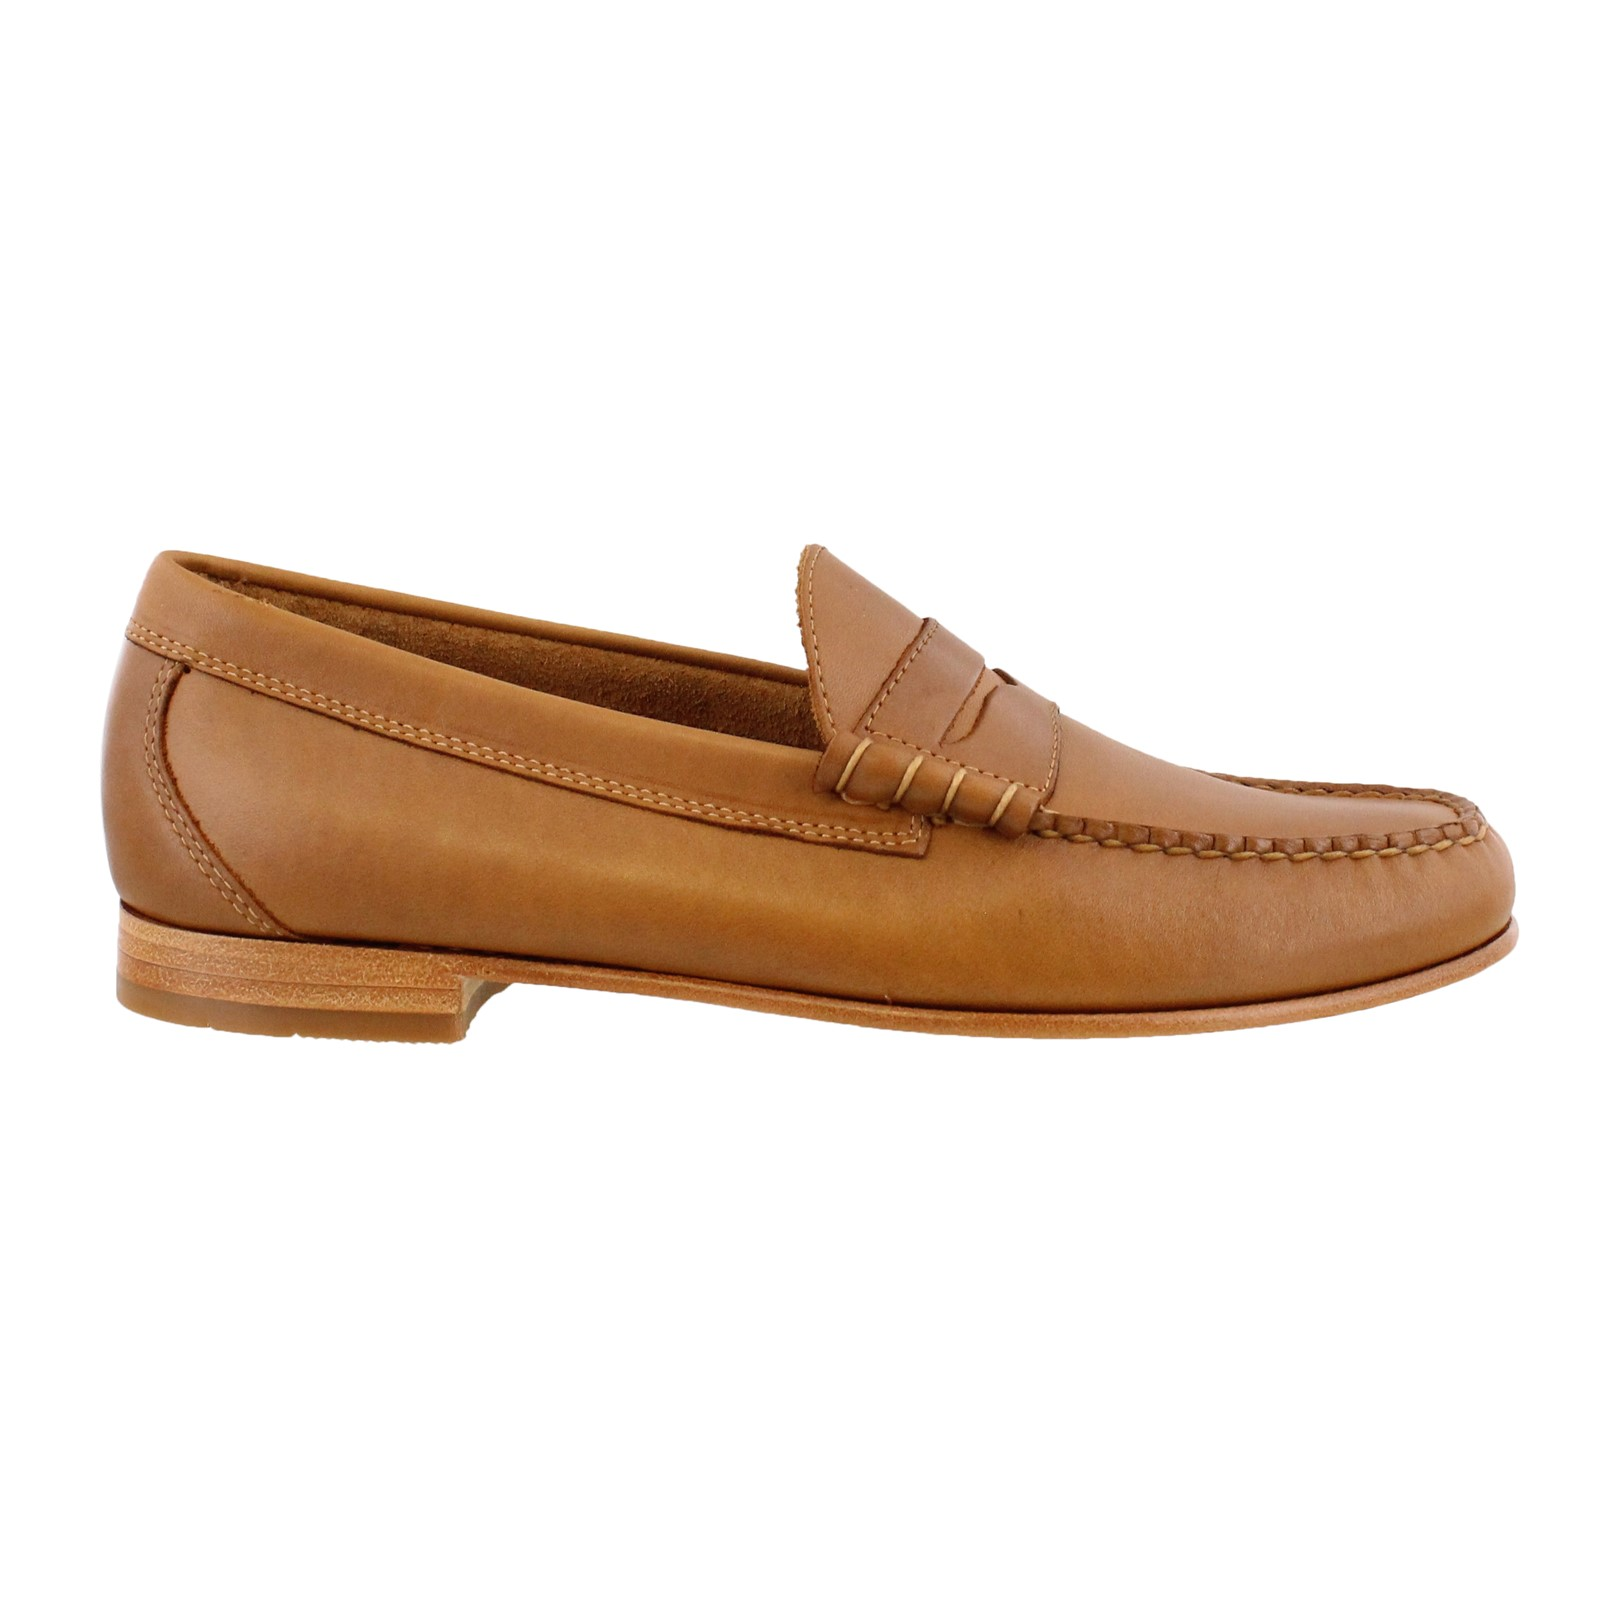 Men's GH Bass and Co, Lambert Weejuns Penny Loafers